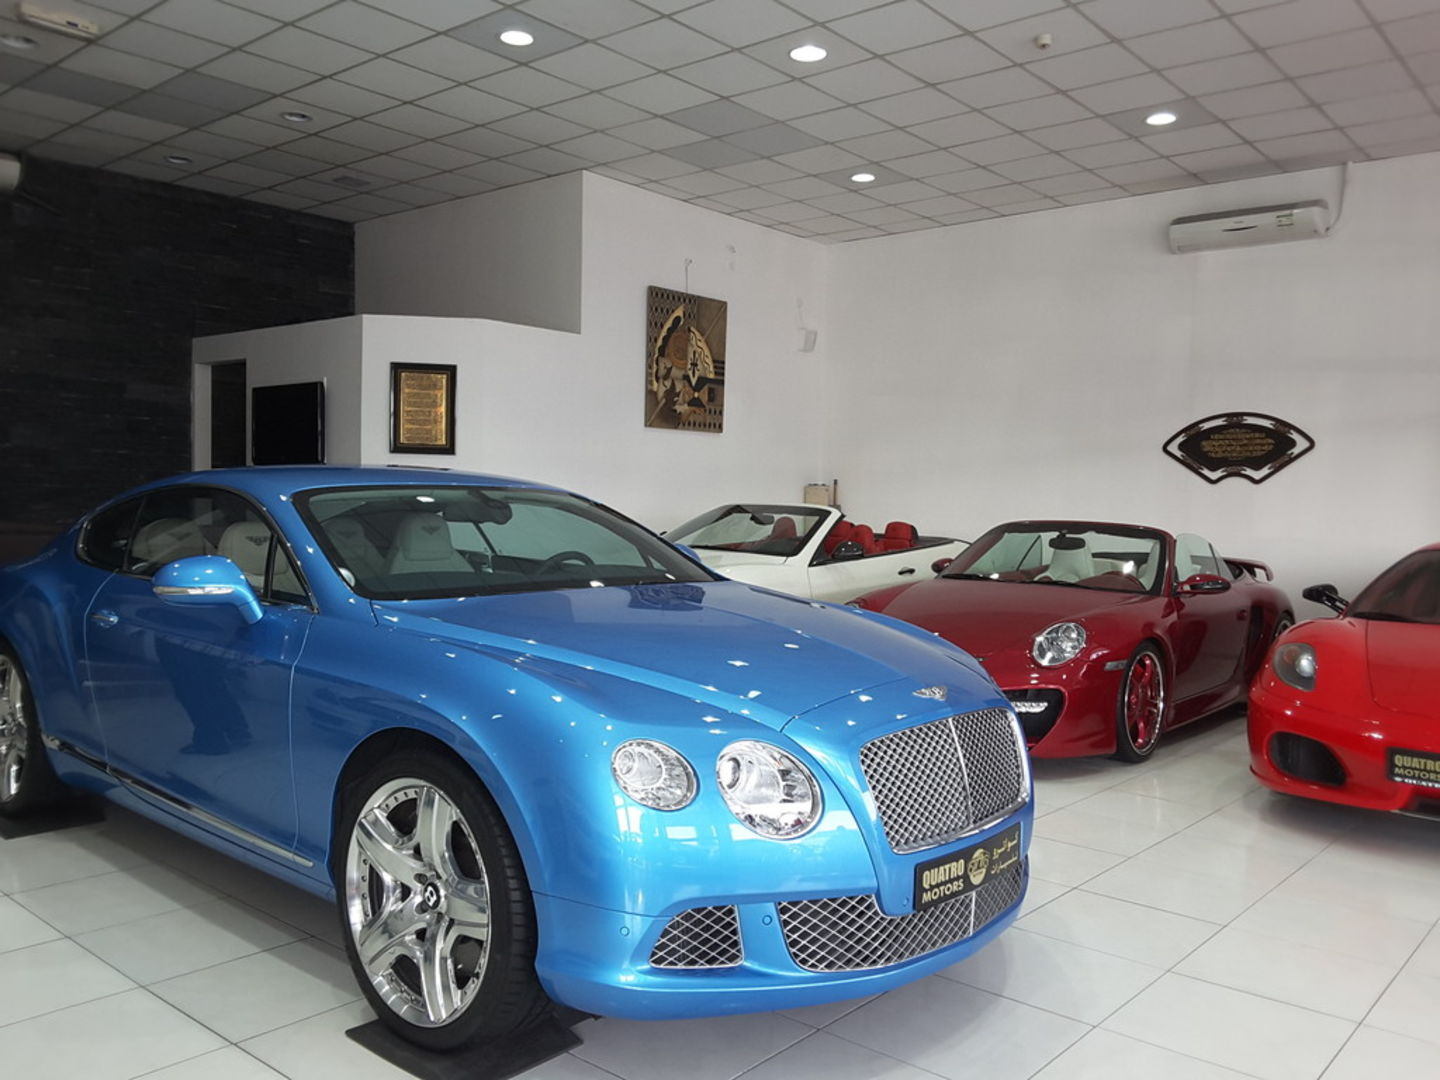 HiDubai-business-quatro-motors-transport-vehicle-services-used-car-dealers-ras-al-khor-industrial-3-dubai-2